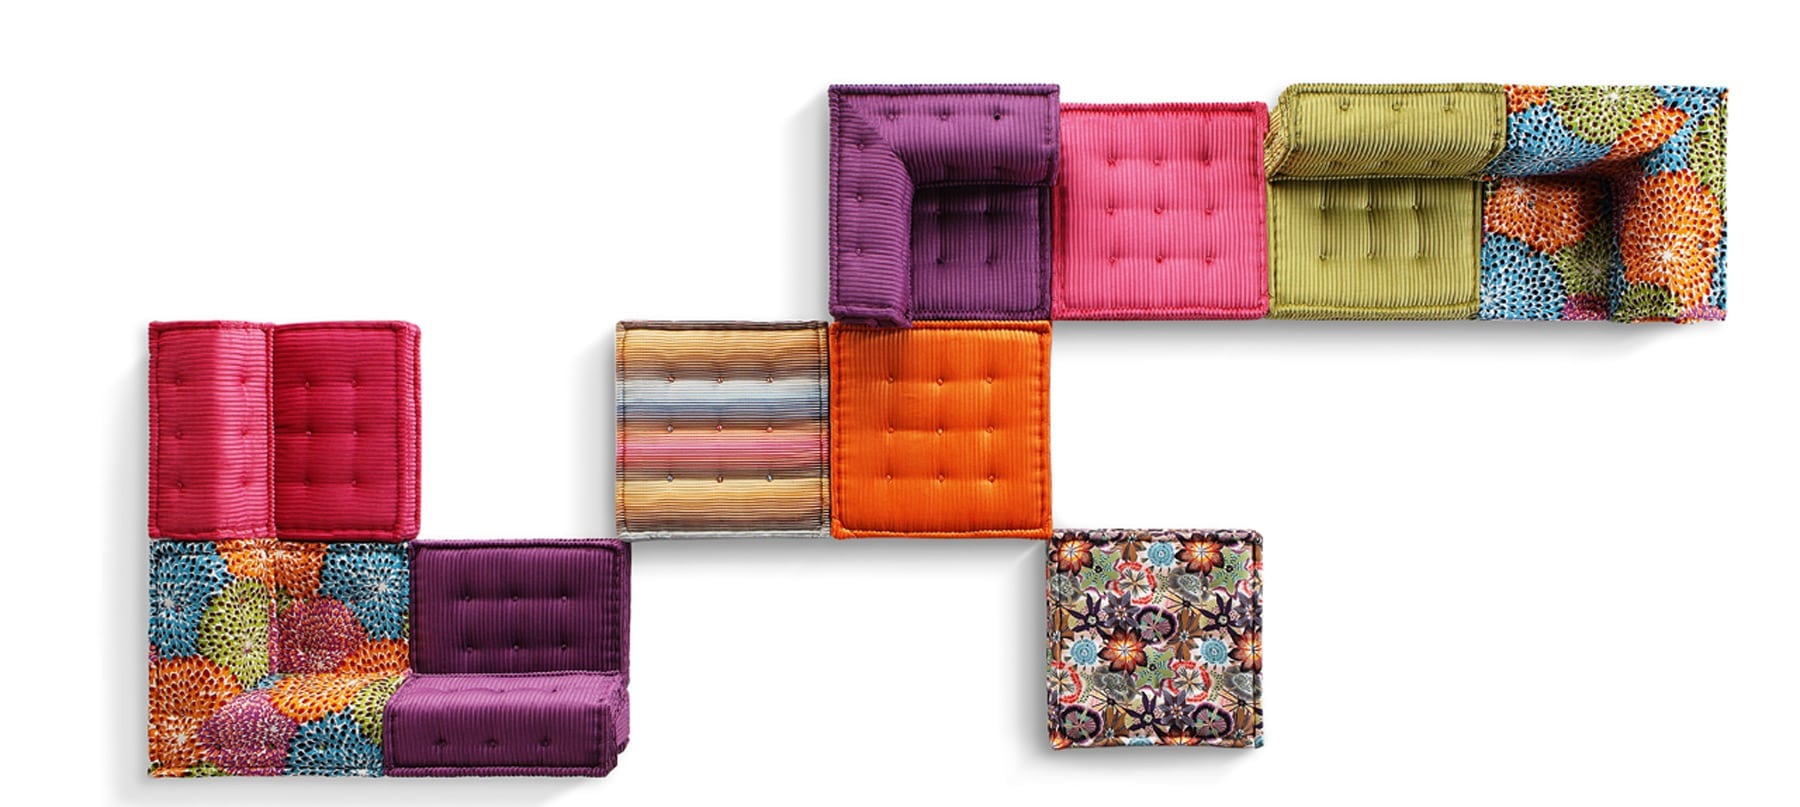 Giant mobile cushions upholstered in eye-catching fabric — The Mah Jong sofa